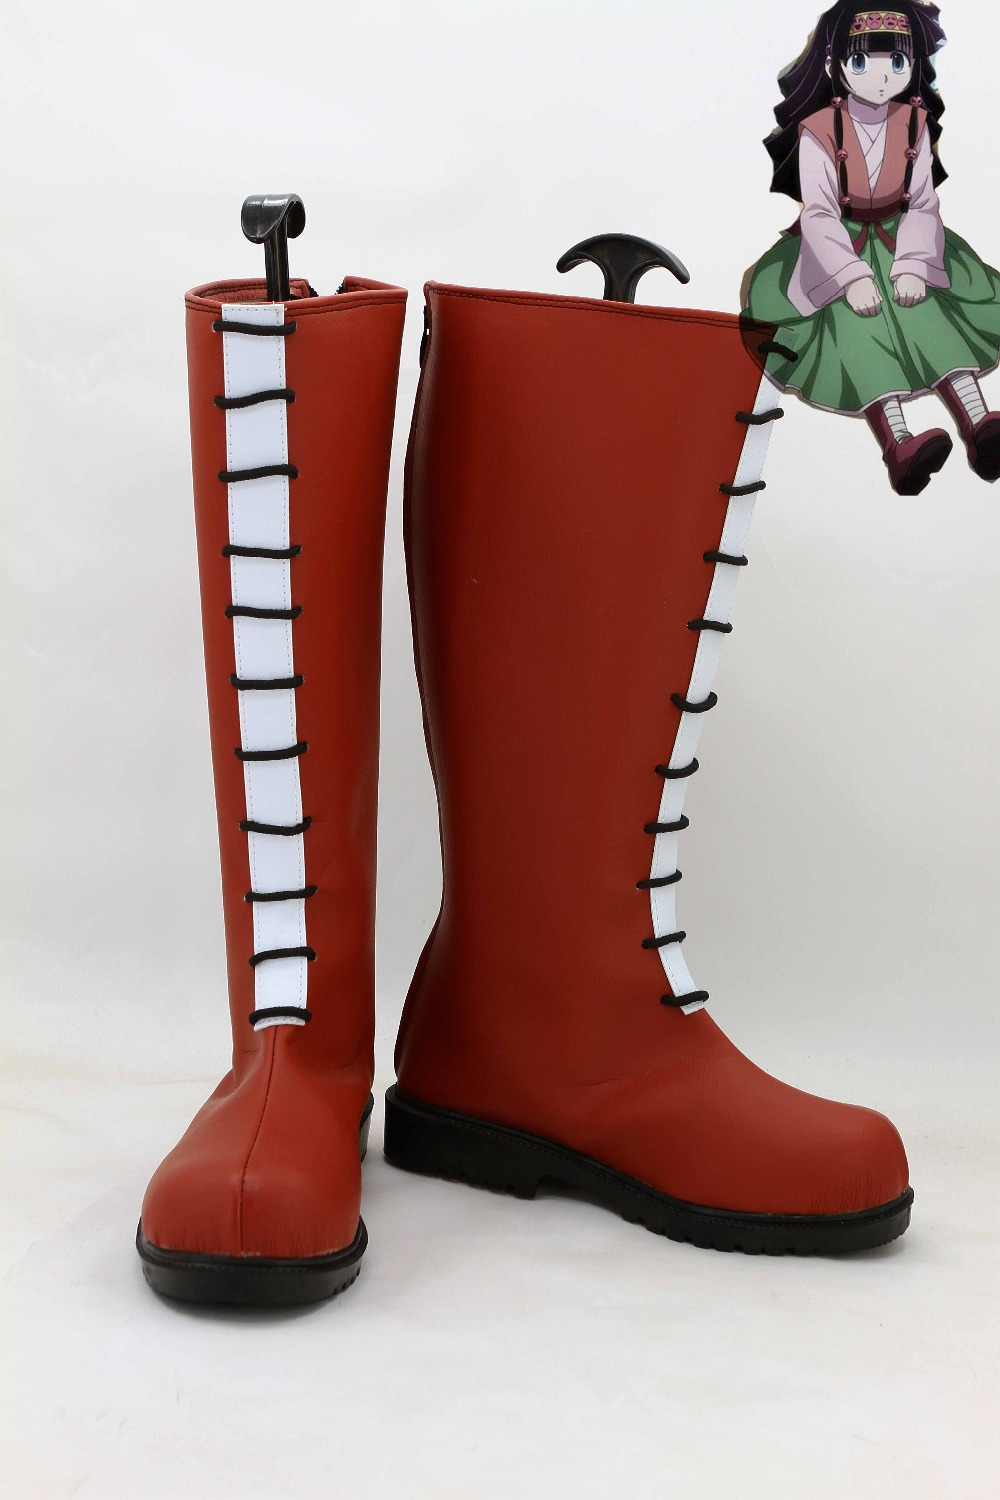 Alluka Zoldyck Cosplay Boots Party Anime Shoes Custom Made